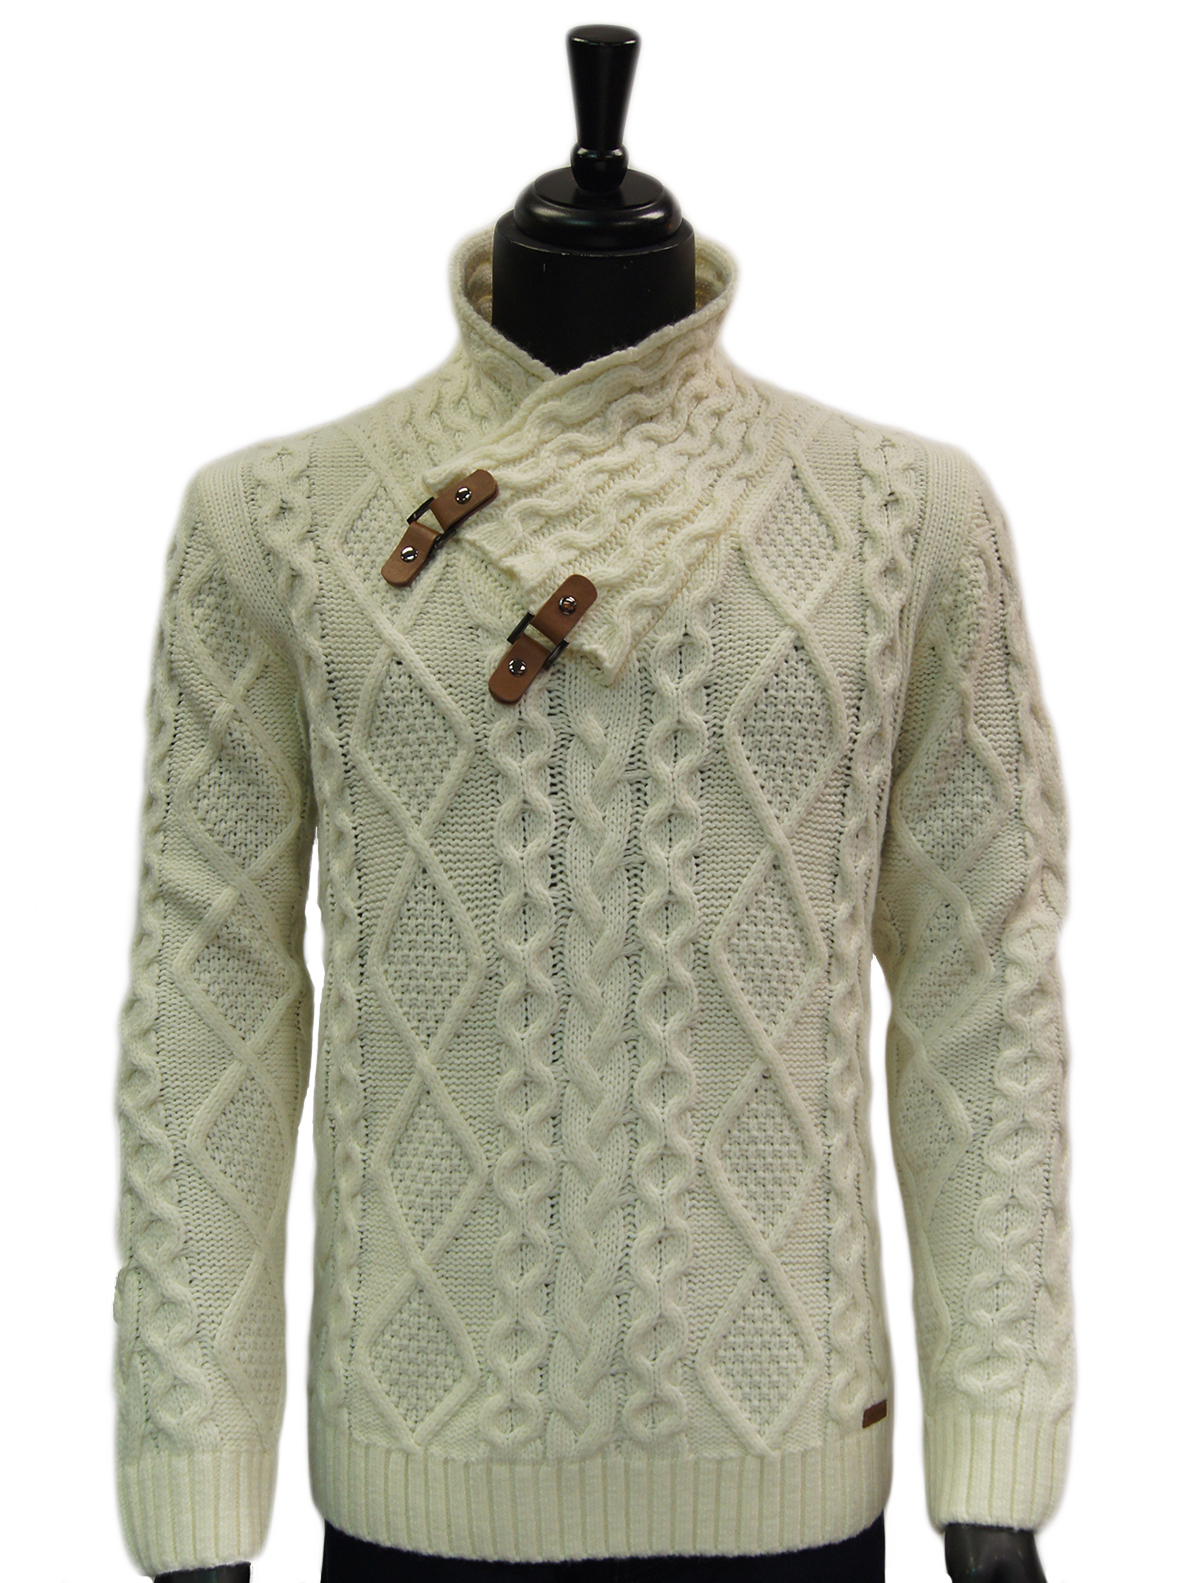 b509985fe0f9 Mens Cream Leather Toggle Button High Collar Cable Knit Bulky Pullover  Sweater. 100% Satisfaction ...